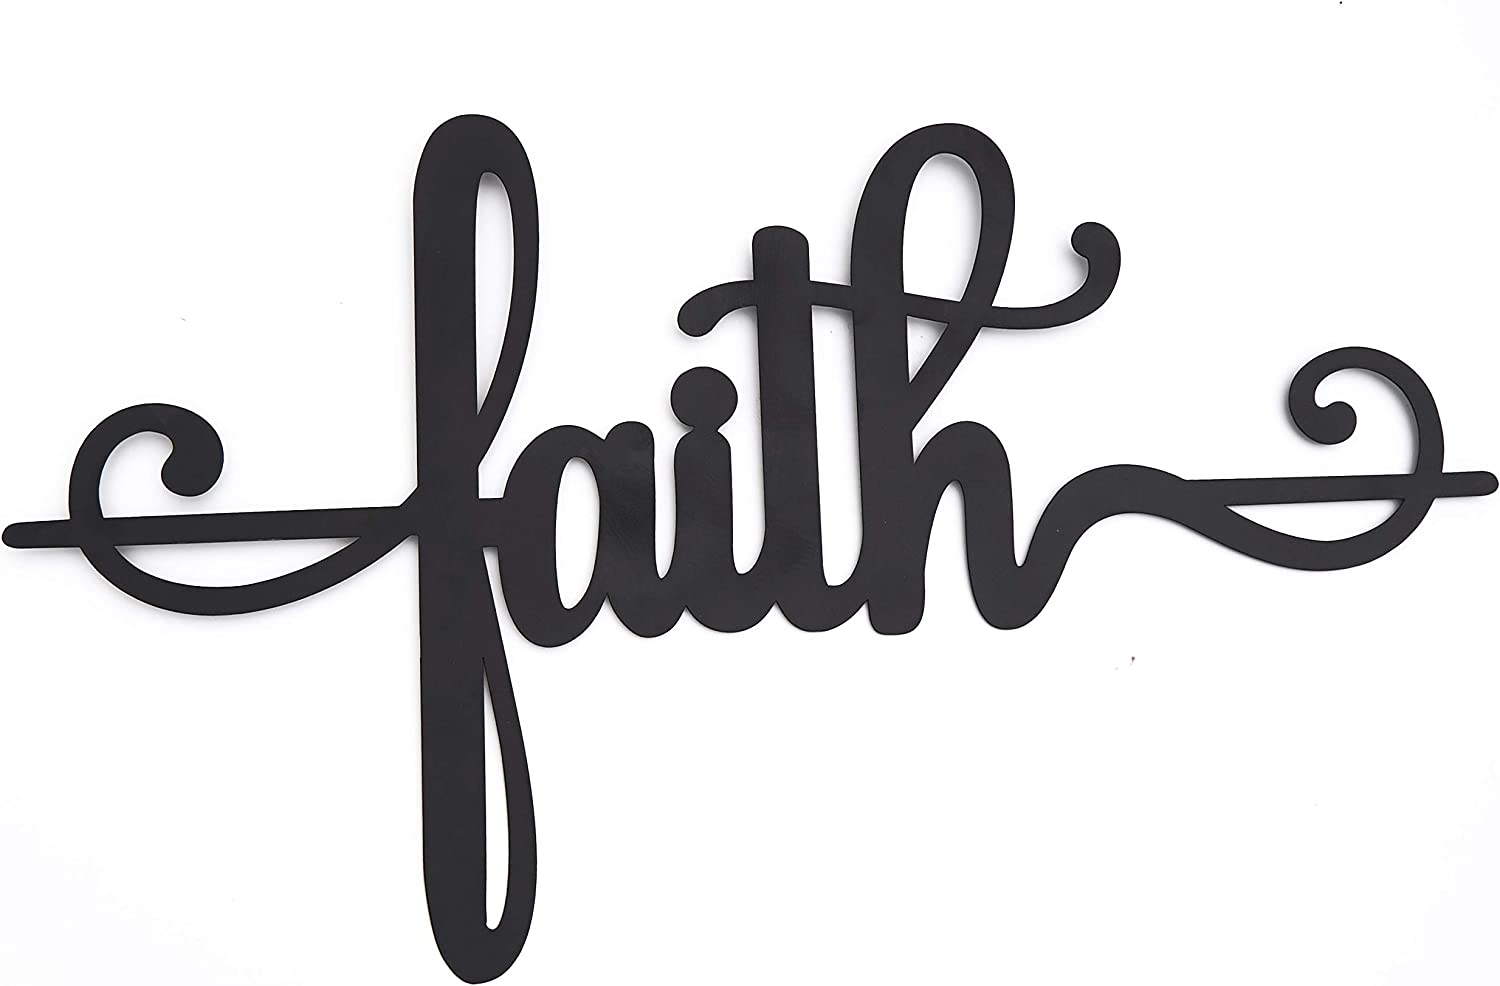 The Lakeside Collection Inspirational Metal Wall Hanging Religious Accent Words - Faith